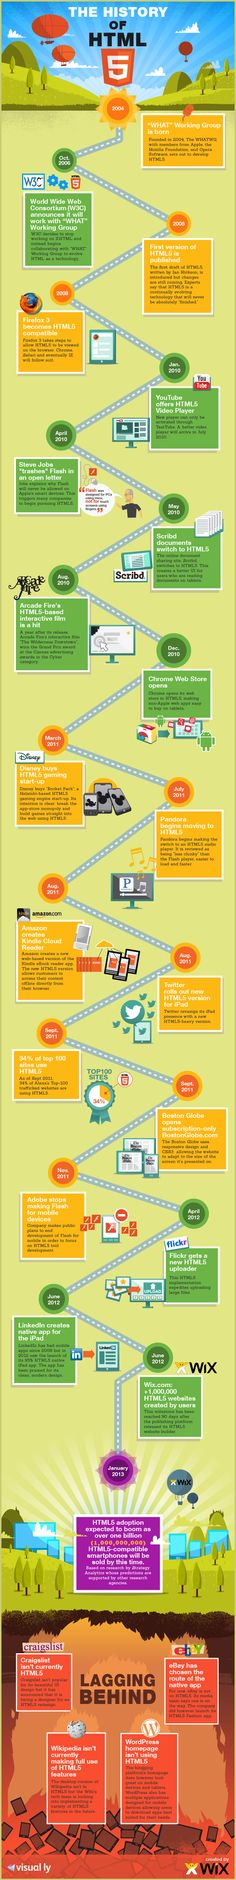 It's old ... but good info. : The History of HTML5 by WIX.